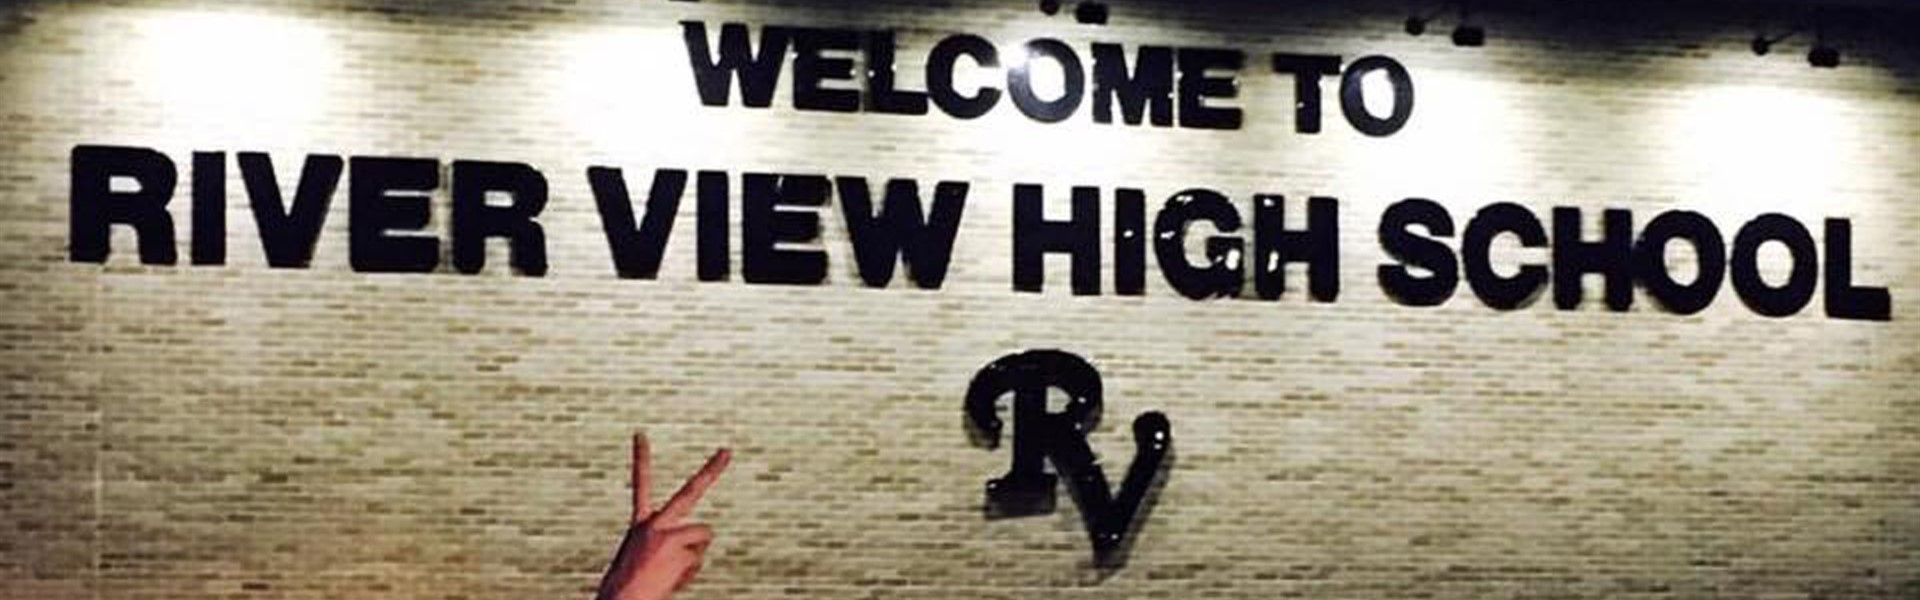 River View High School